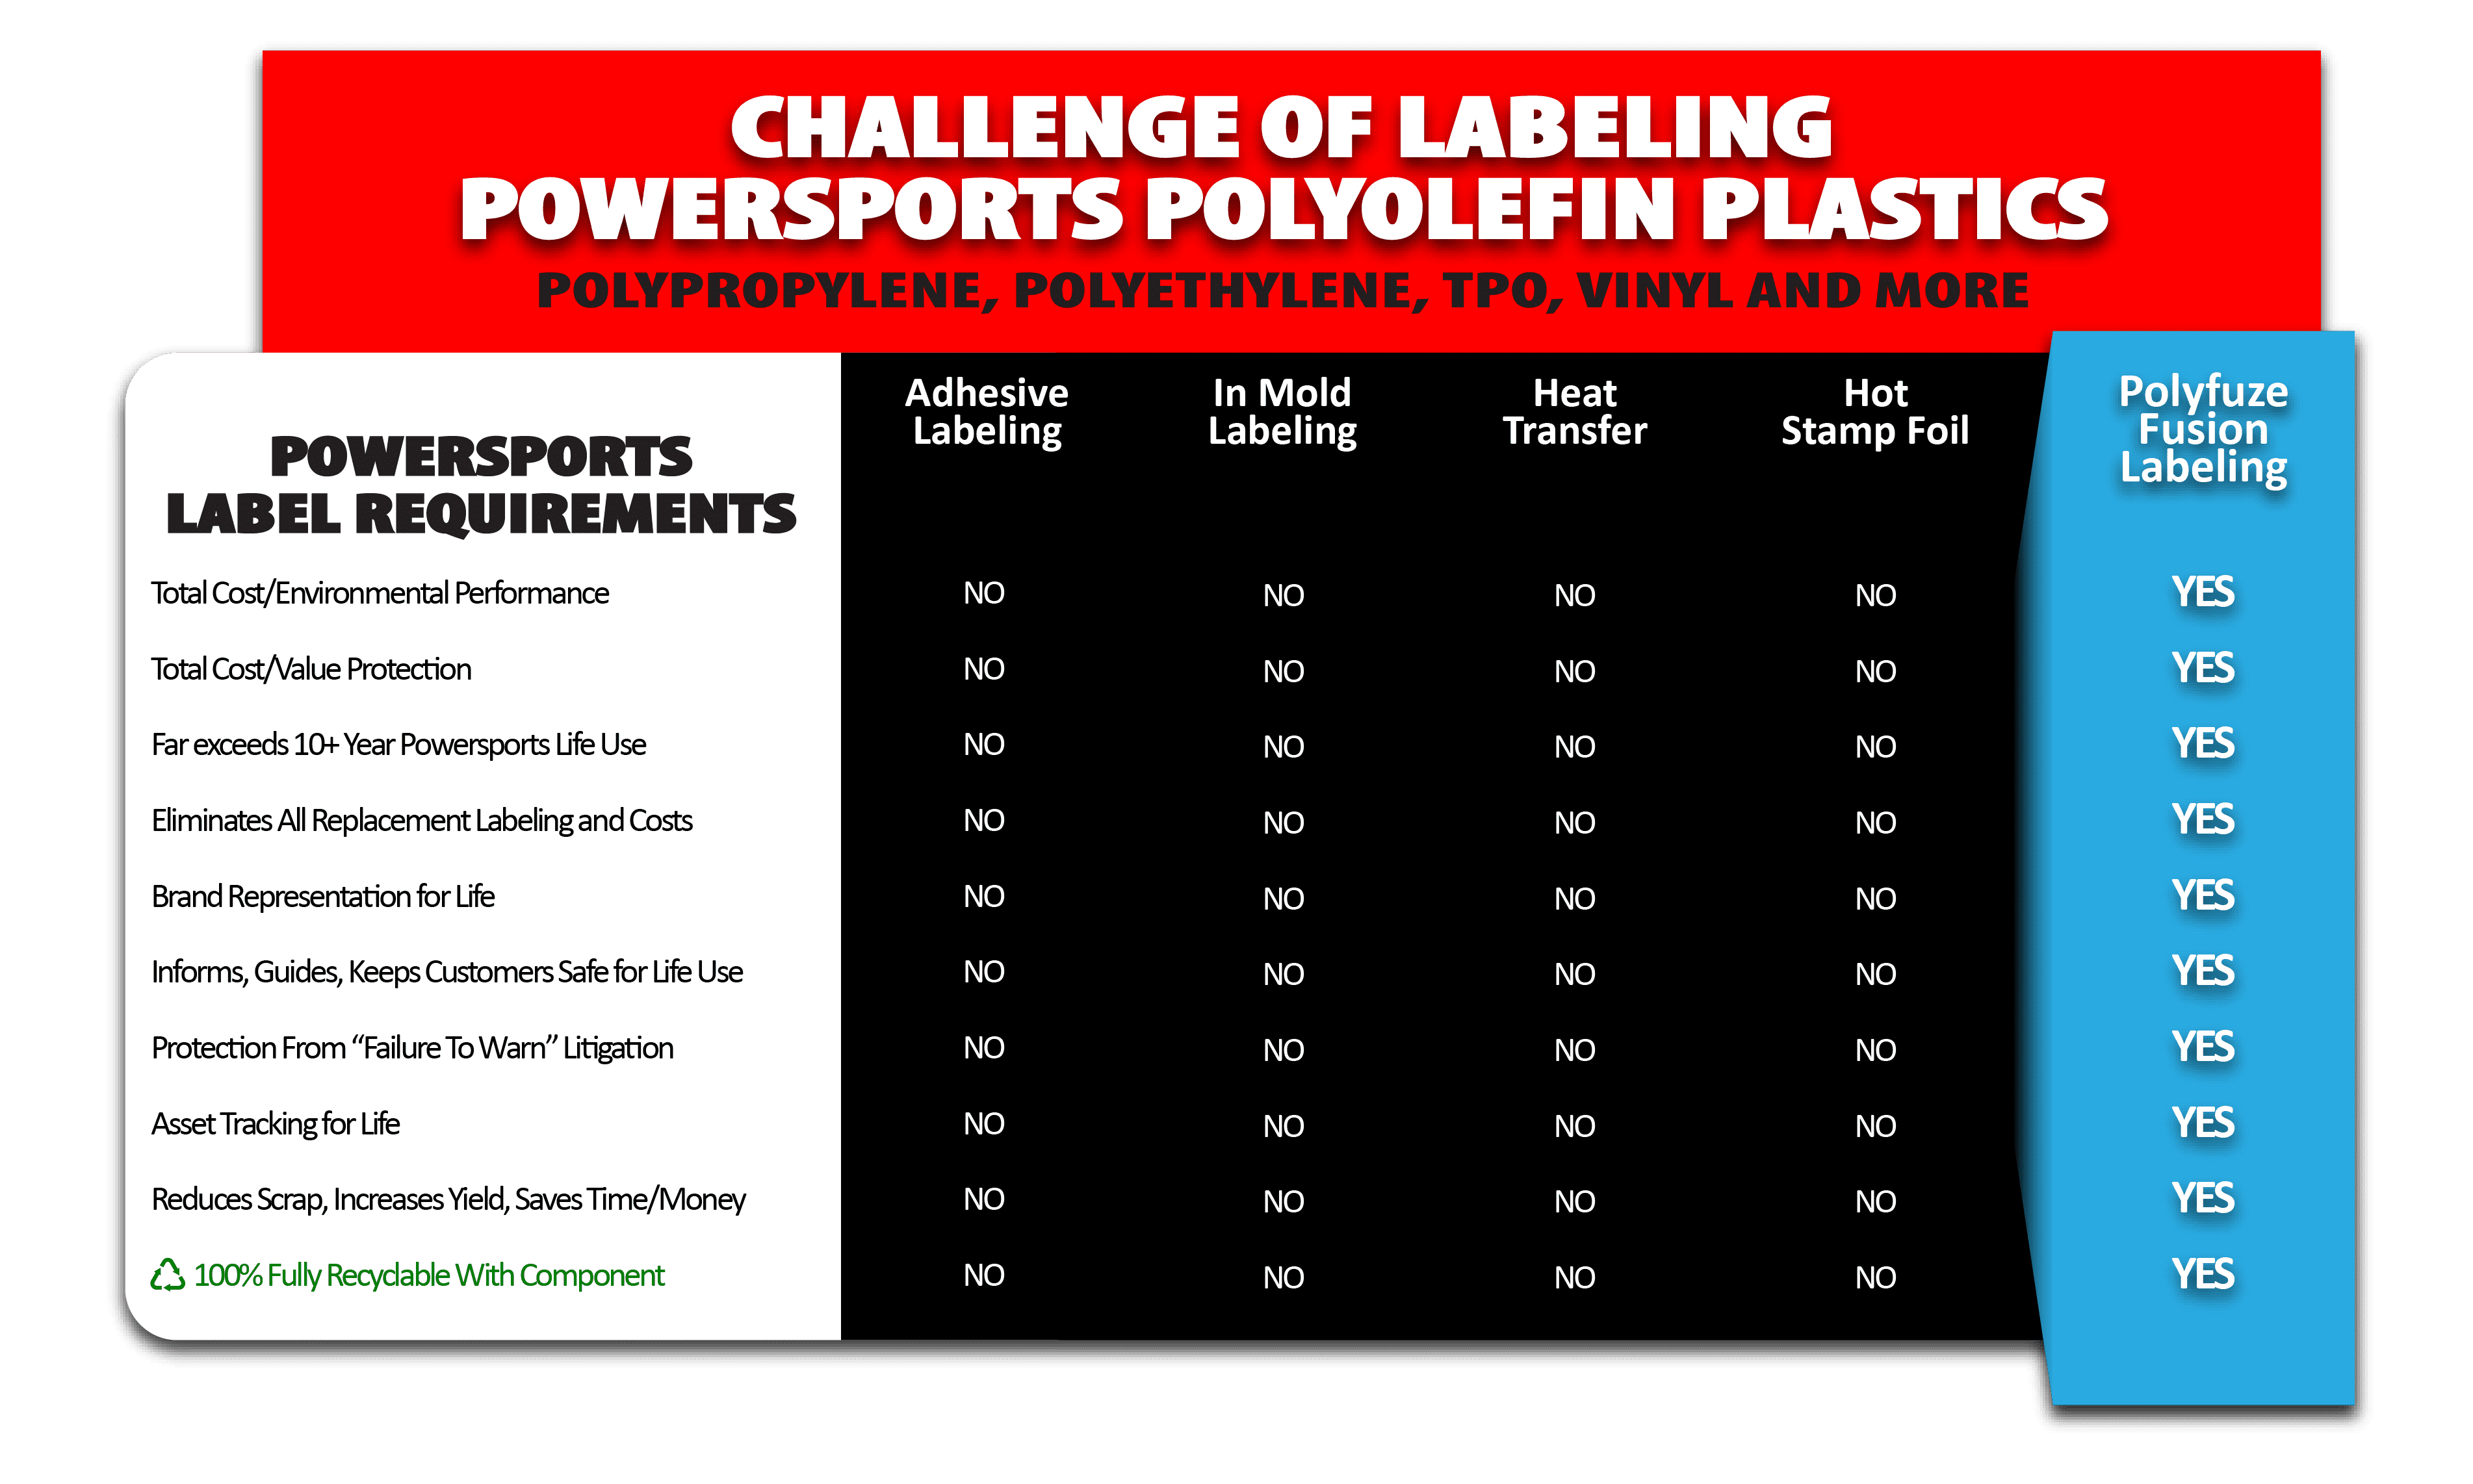 Fusion Labeling For Powersports Polymers